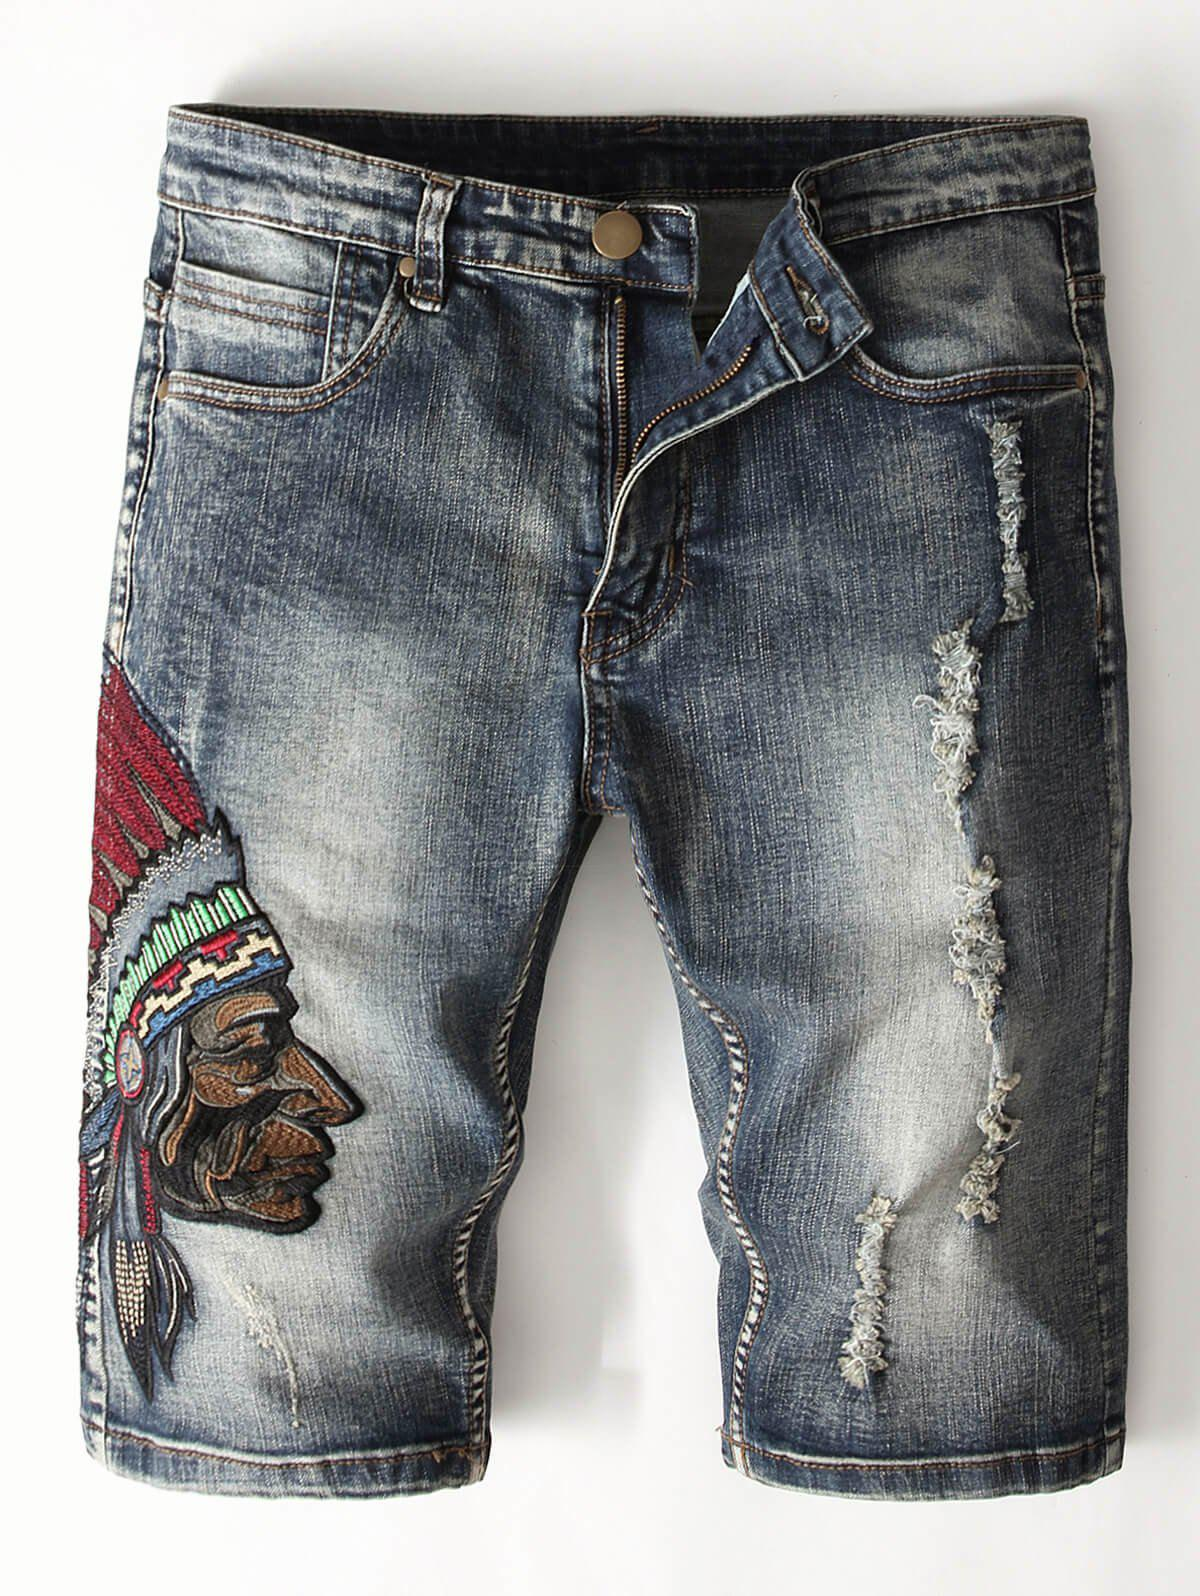 Fashion Tribal Embroidery Decoration Jeans Shorts